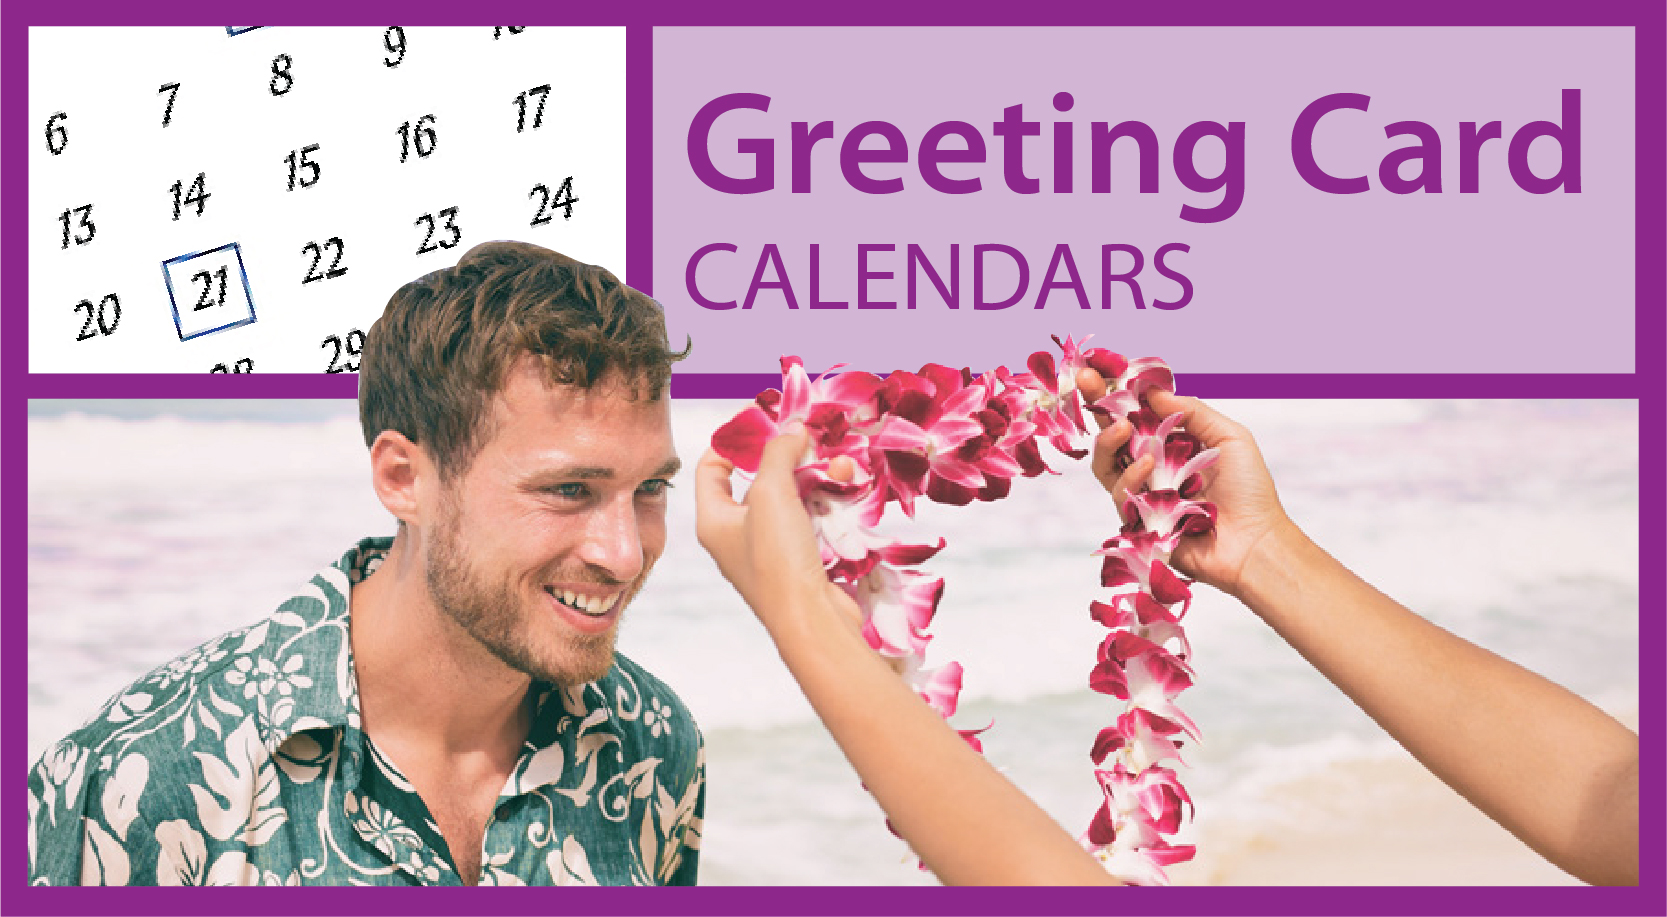 Greeting Card Calendars | Promotional Greeting Card Calendars | Custom Z-Fold Card Calendars